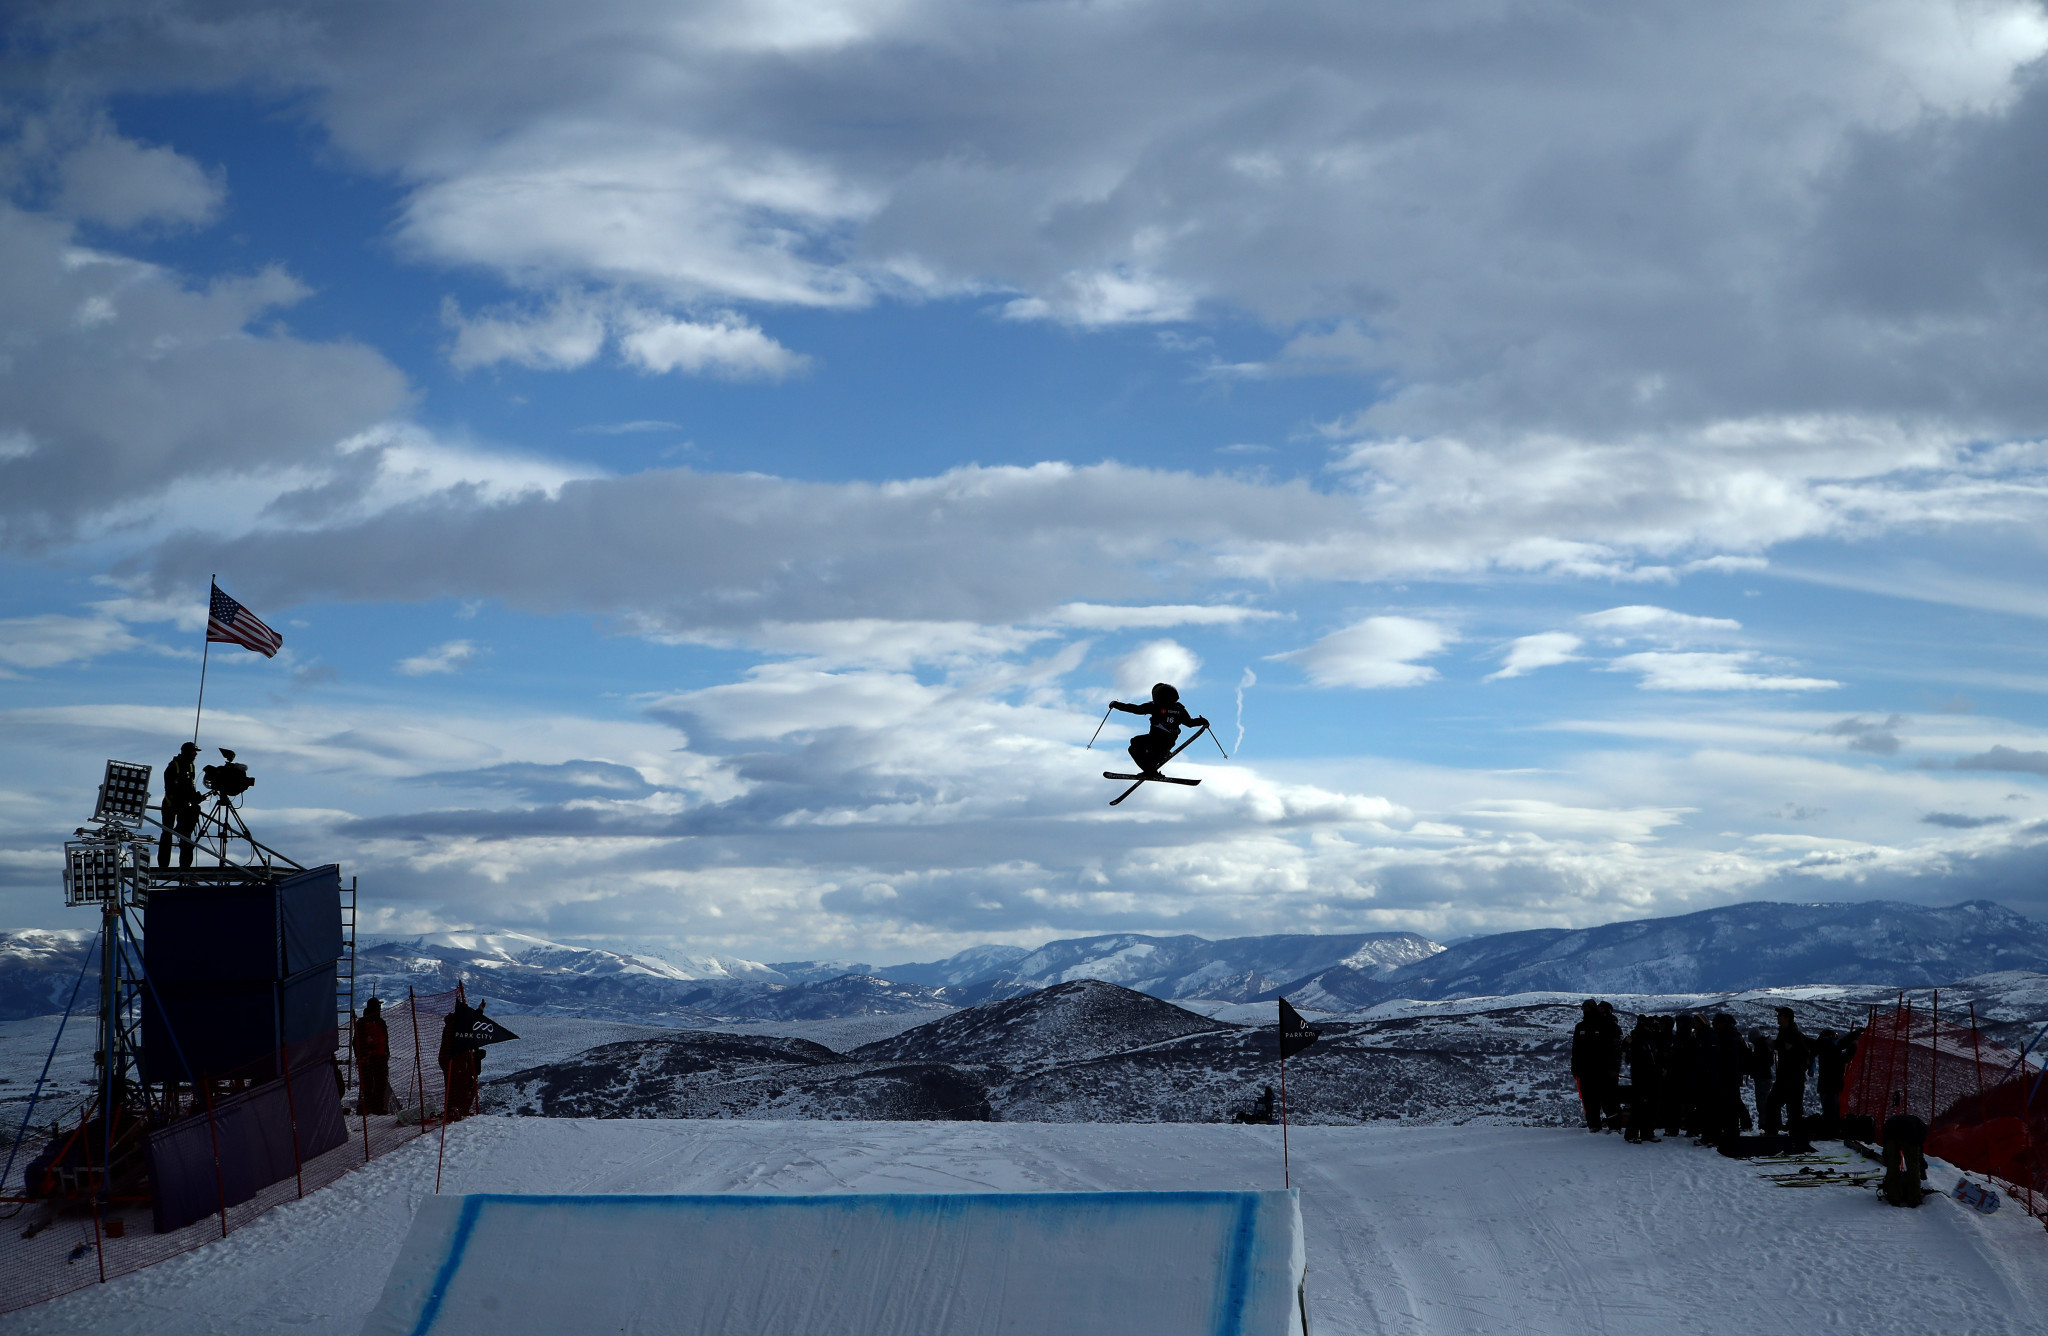 Big Air World Cup in Chur set to open 2021-2022 season with festival atmosphere